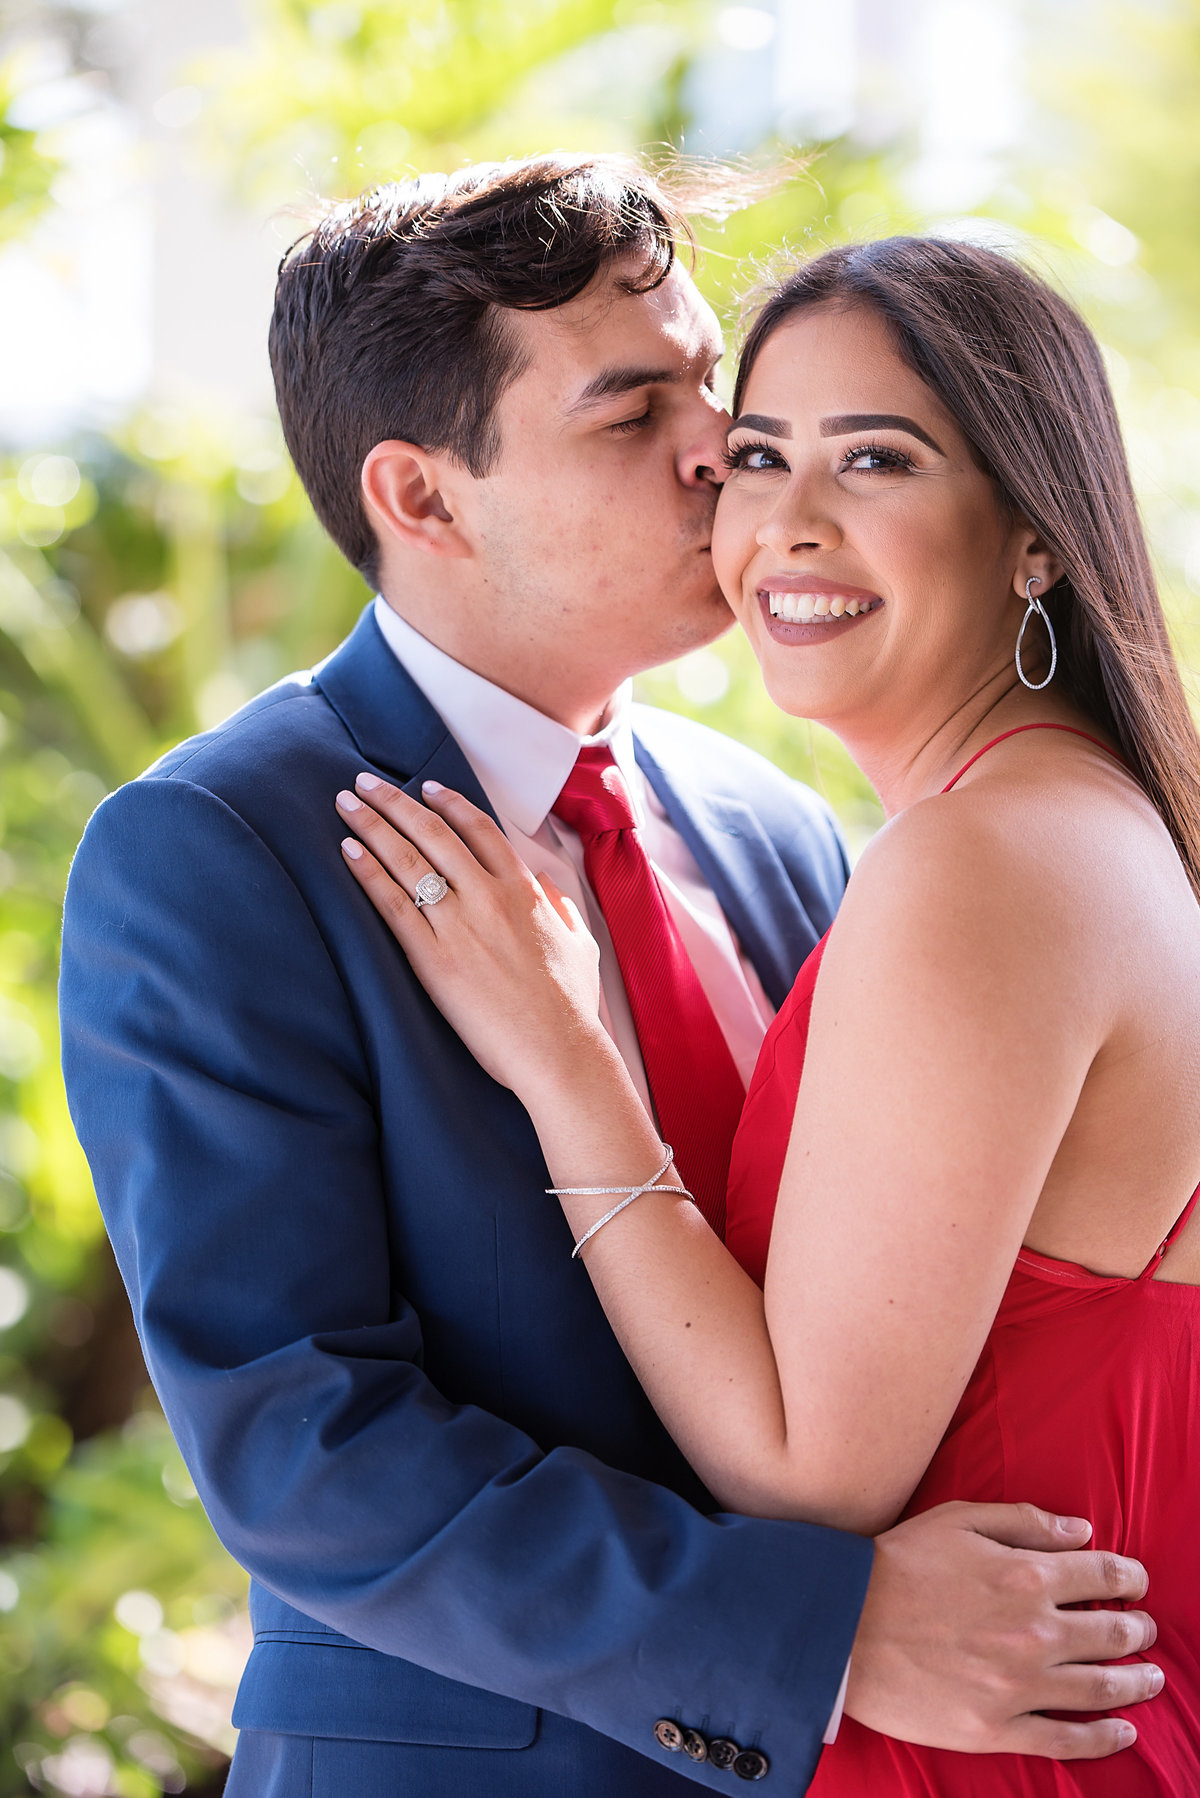 Steph-Juan-Engagement-Sneak-Peek-Perez-Art-Museum-Miami-PAMM-12